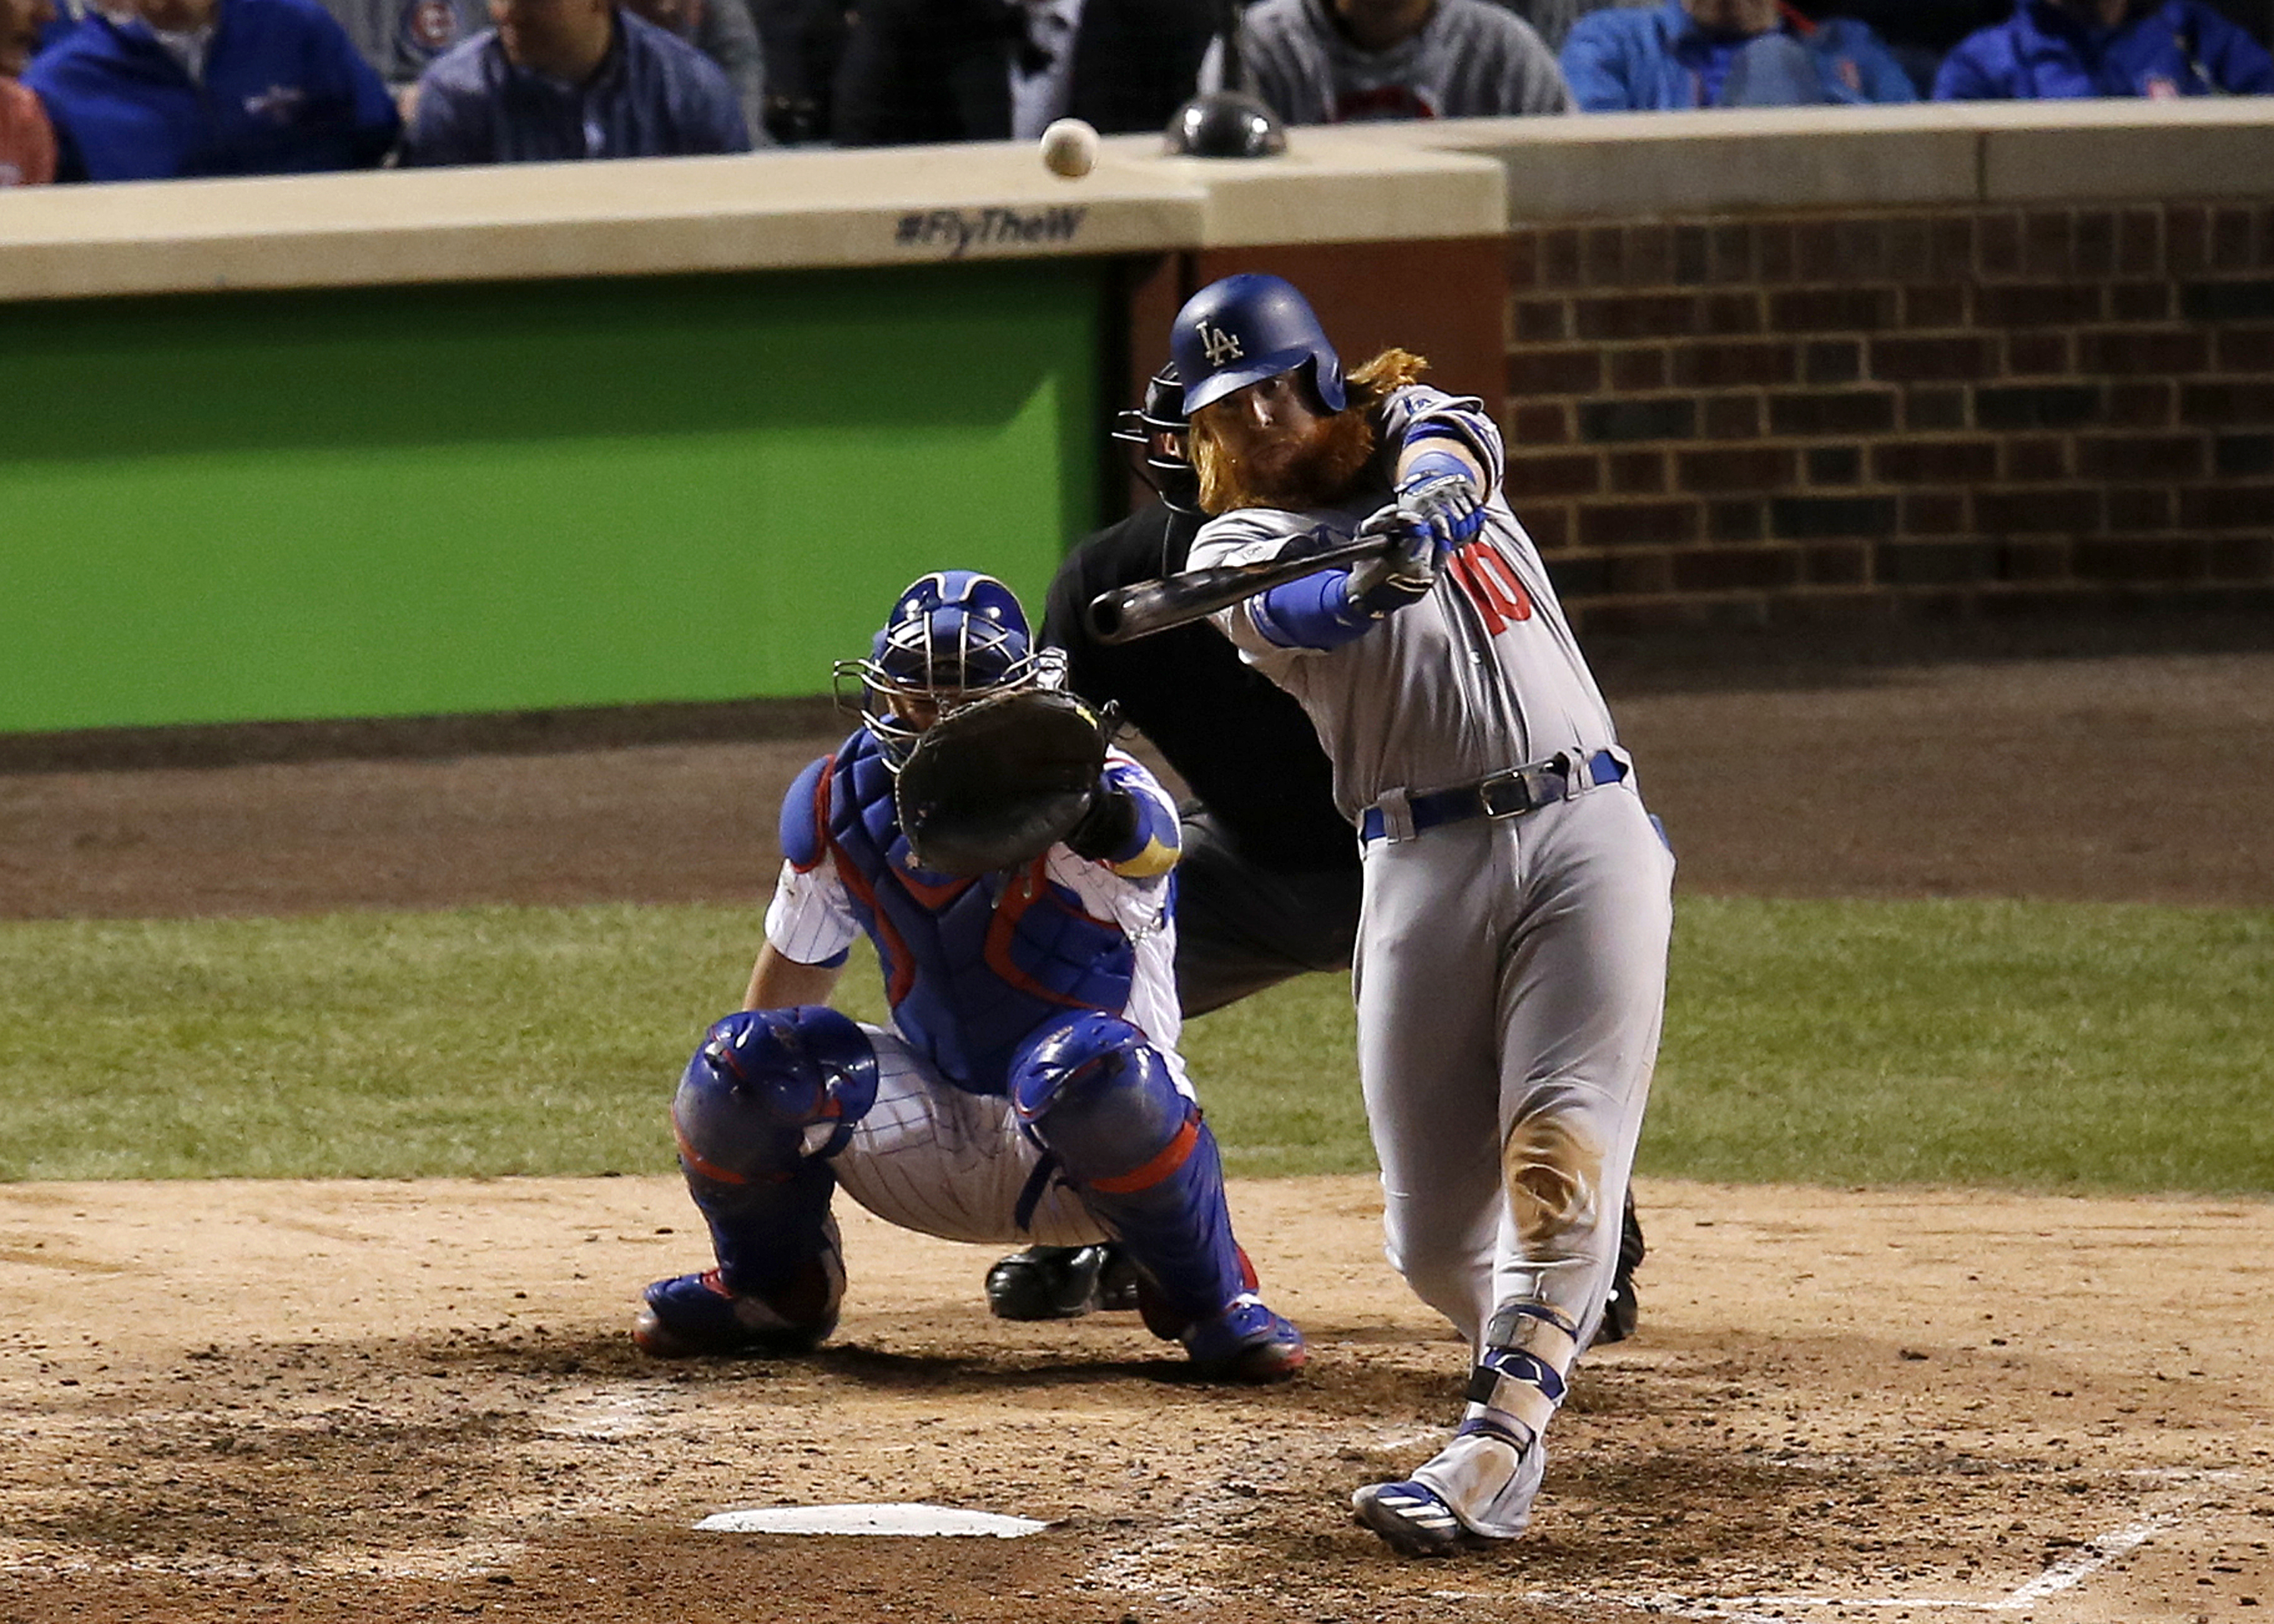 Justin Turner's postseason dominance has surpassed Babe Ruth's in one category